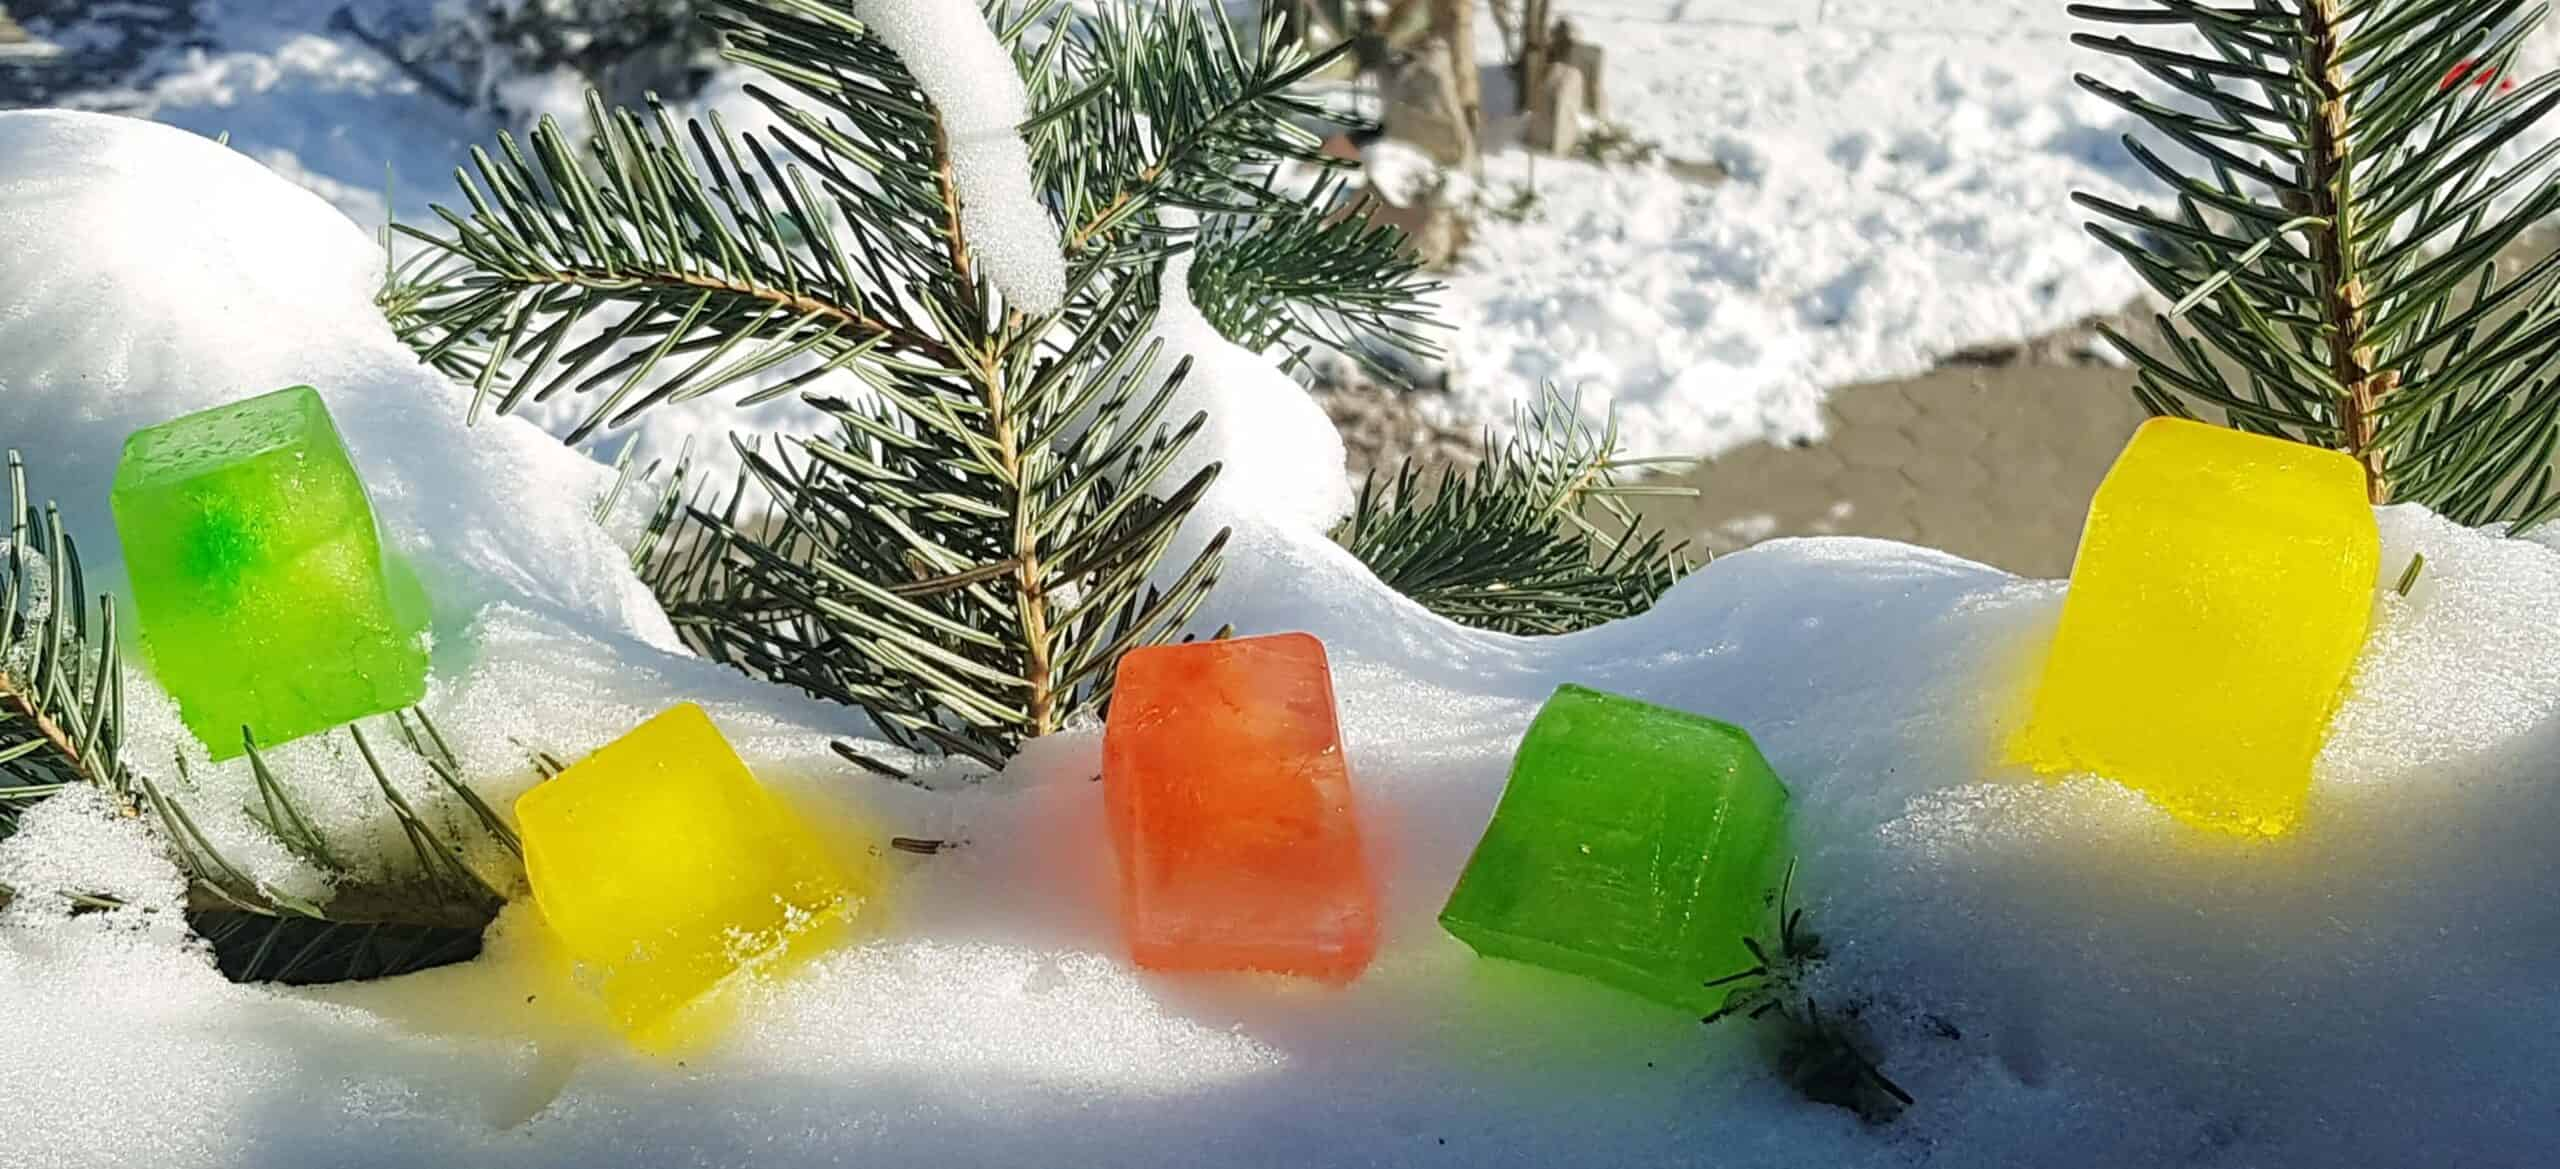 winter scavengerhunt ideas with colored ice cubes